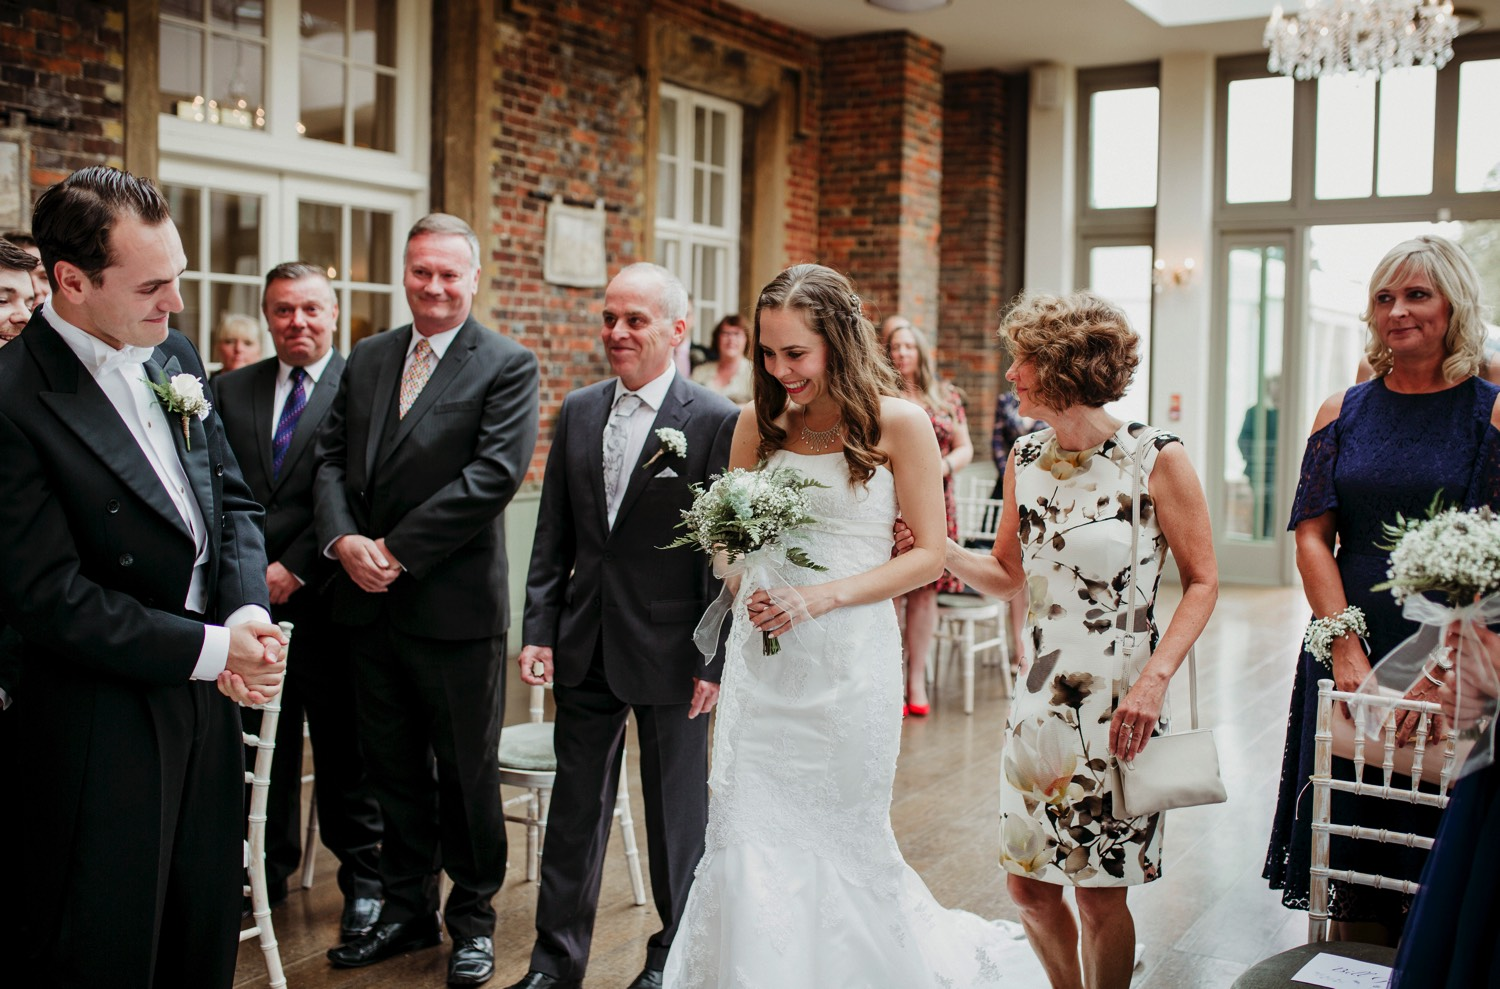 Offley-Place-Country-House-Hotel-Hitchin-wedding-JJ13.jpg